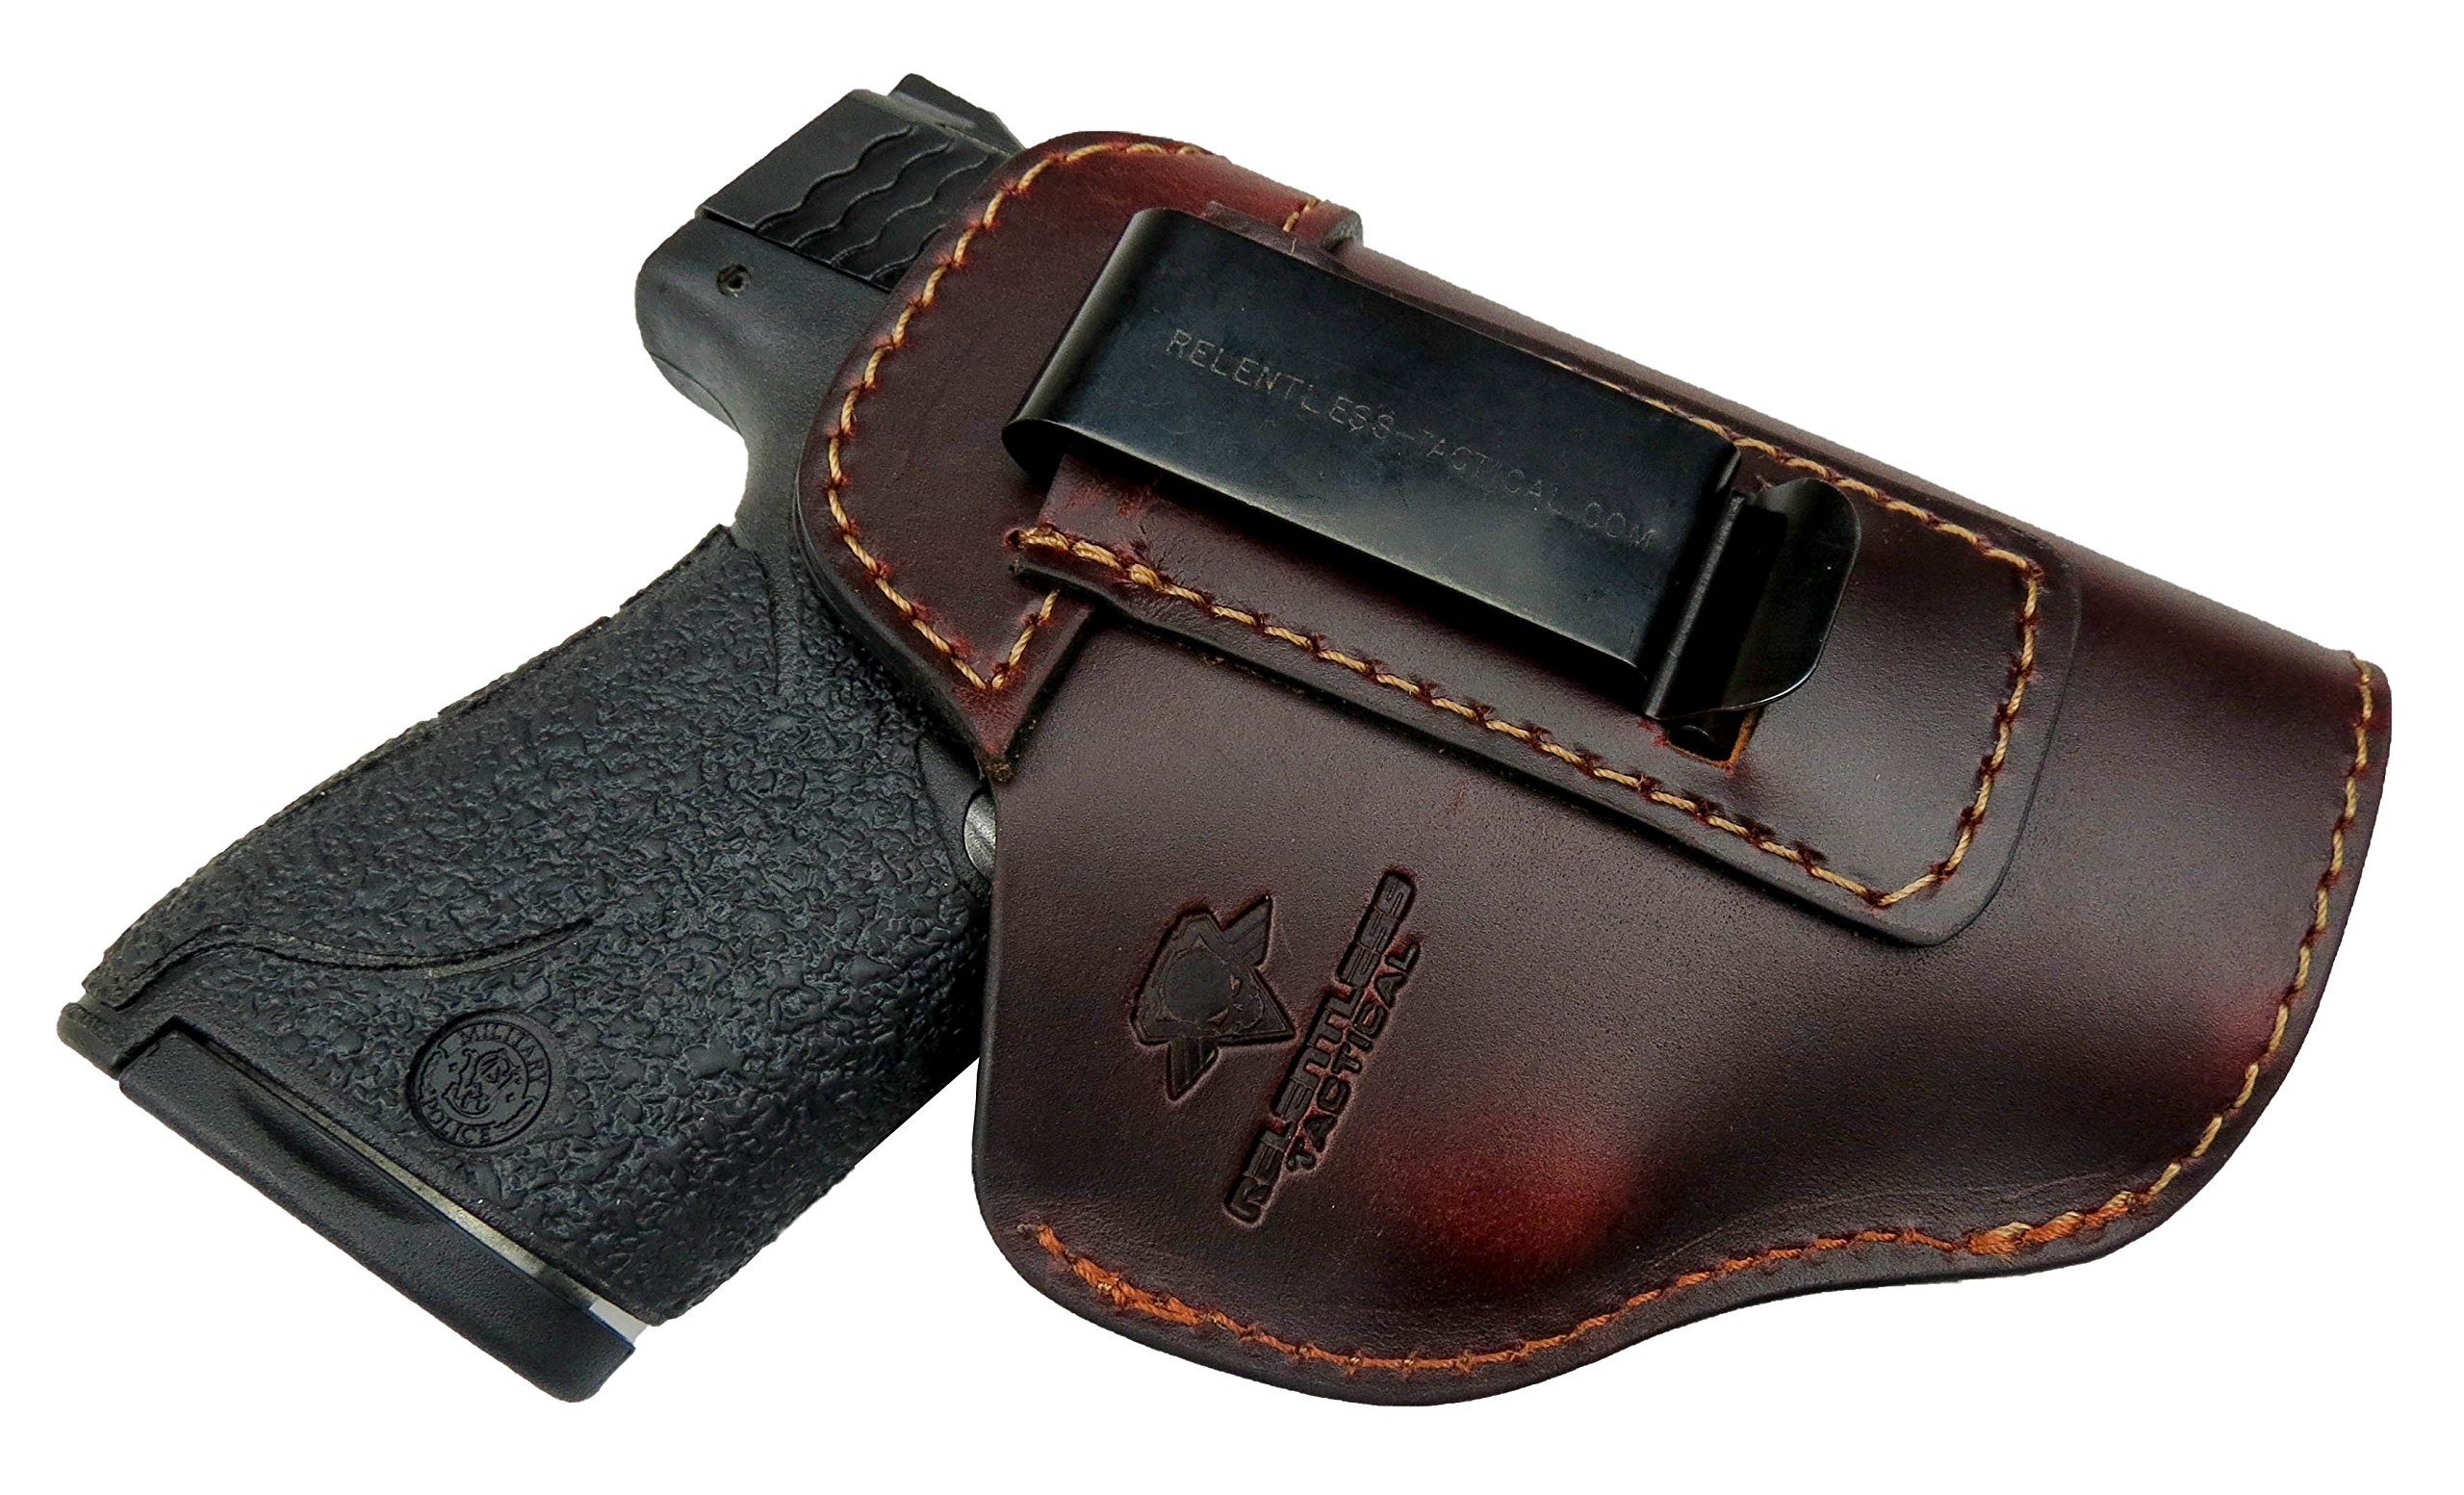 Relentless Tactical The Defender Leather IWB Holster - Made in USA - For S&W M&P Shield - GLOCK 17 19 22 23 32 33/Springfield XD & XDS/Plus All Similar Sized Handguns – Brown – Right Handed